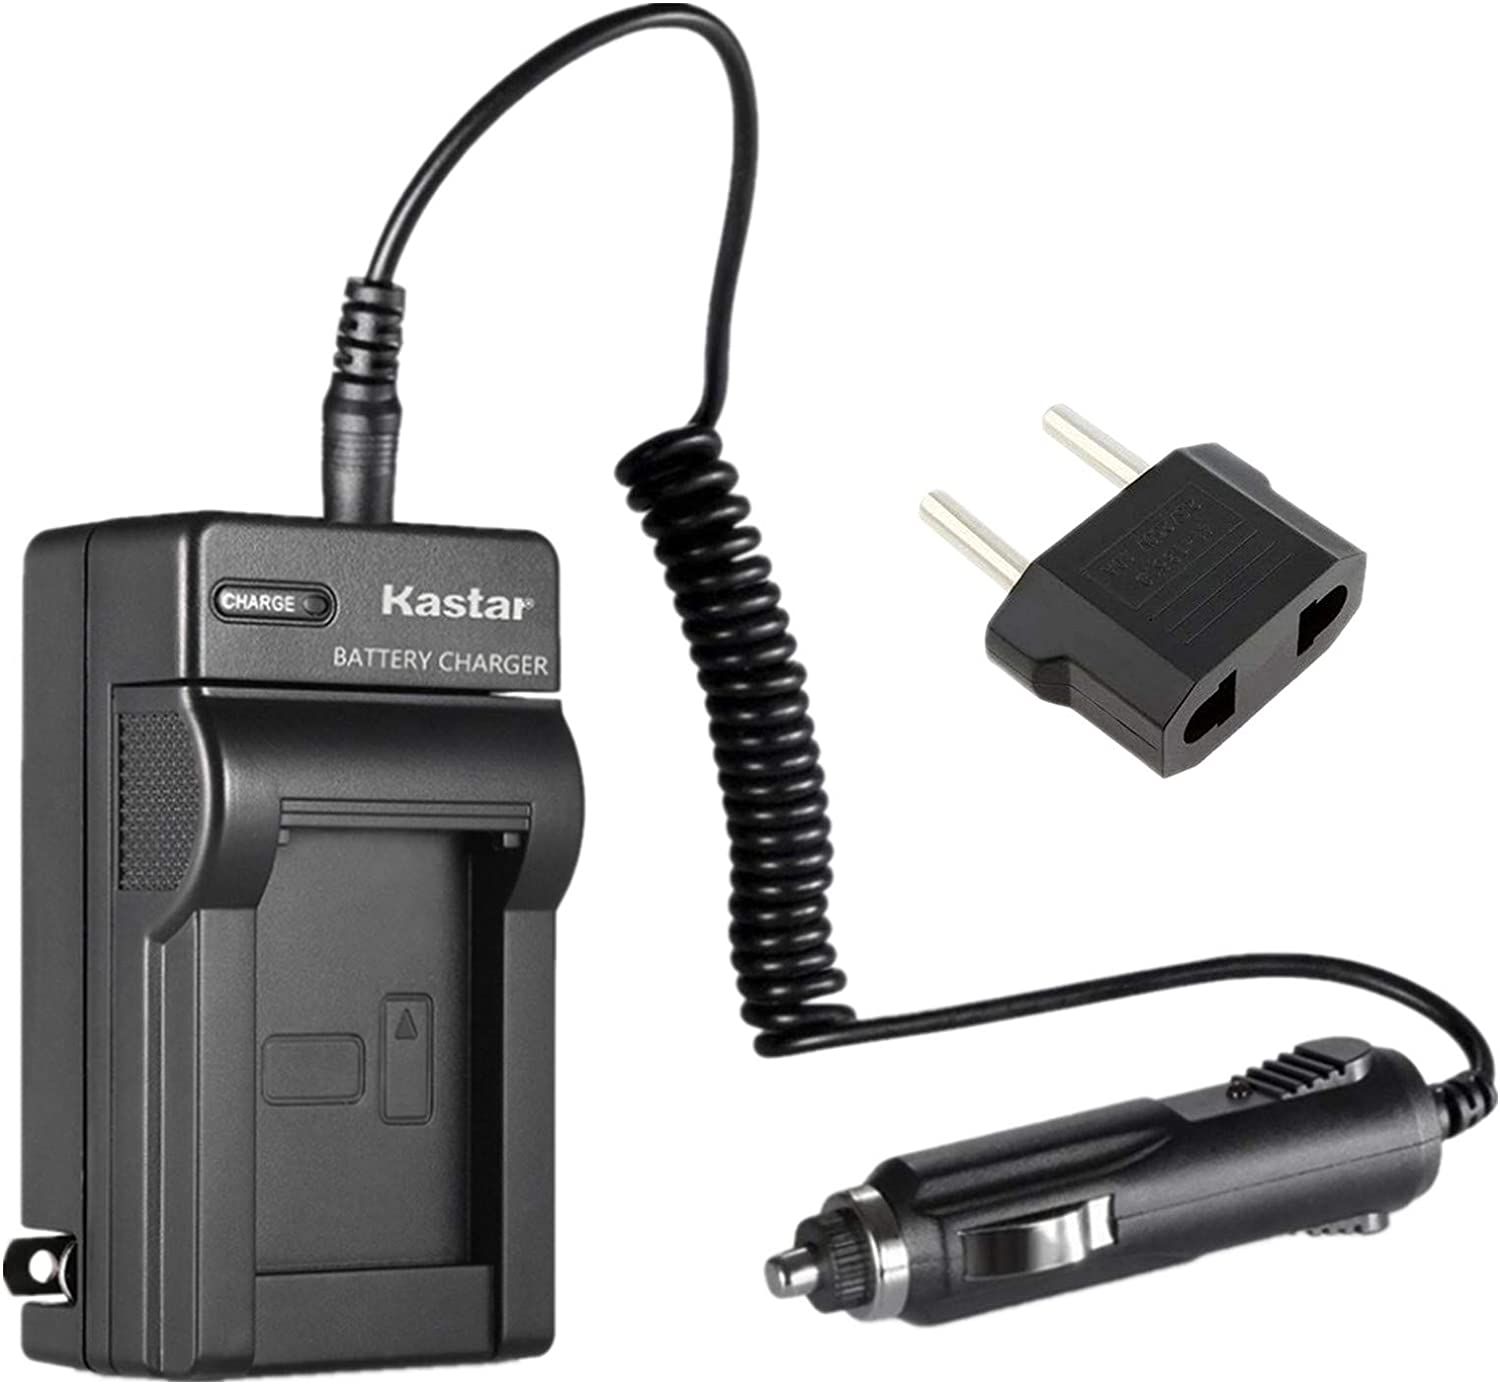 VW-VBN260 Travel Battery Charger for Panasonic VW-VBN130 replaces VW-BC20EBK